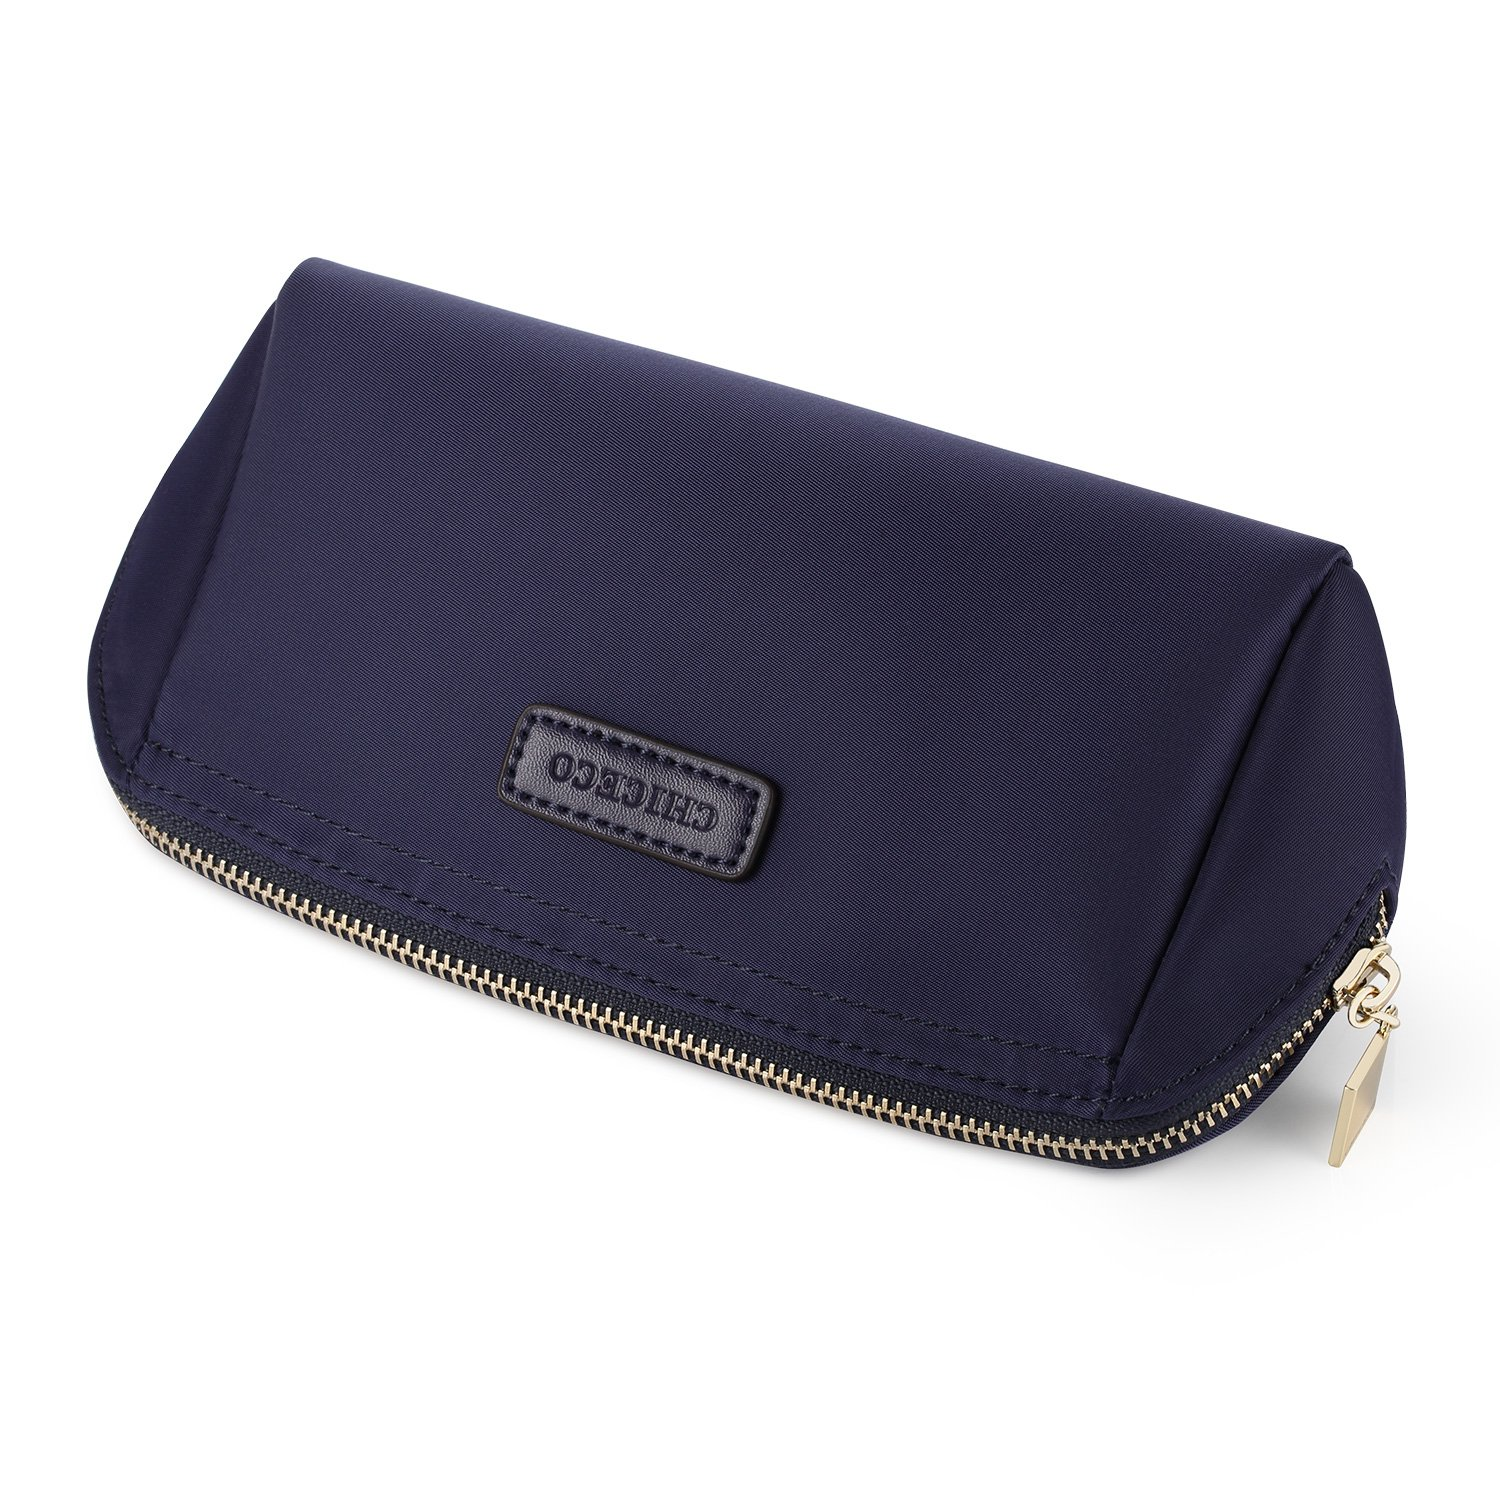 CHICECO Handy Cosmetic Pouch Clutch Makeup Bag - Navy Blue by CHICECO (Image #7)